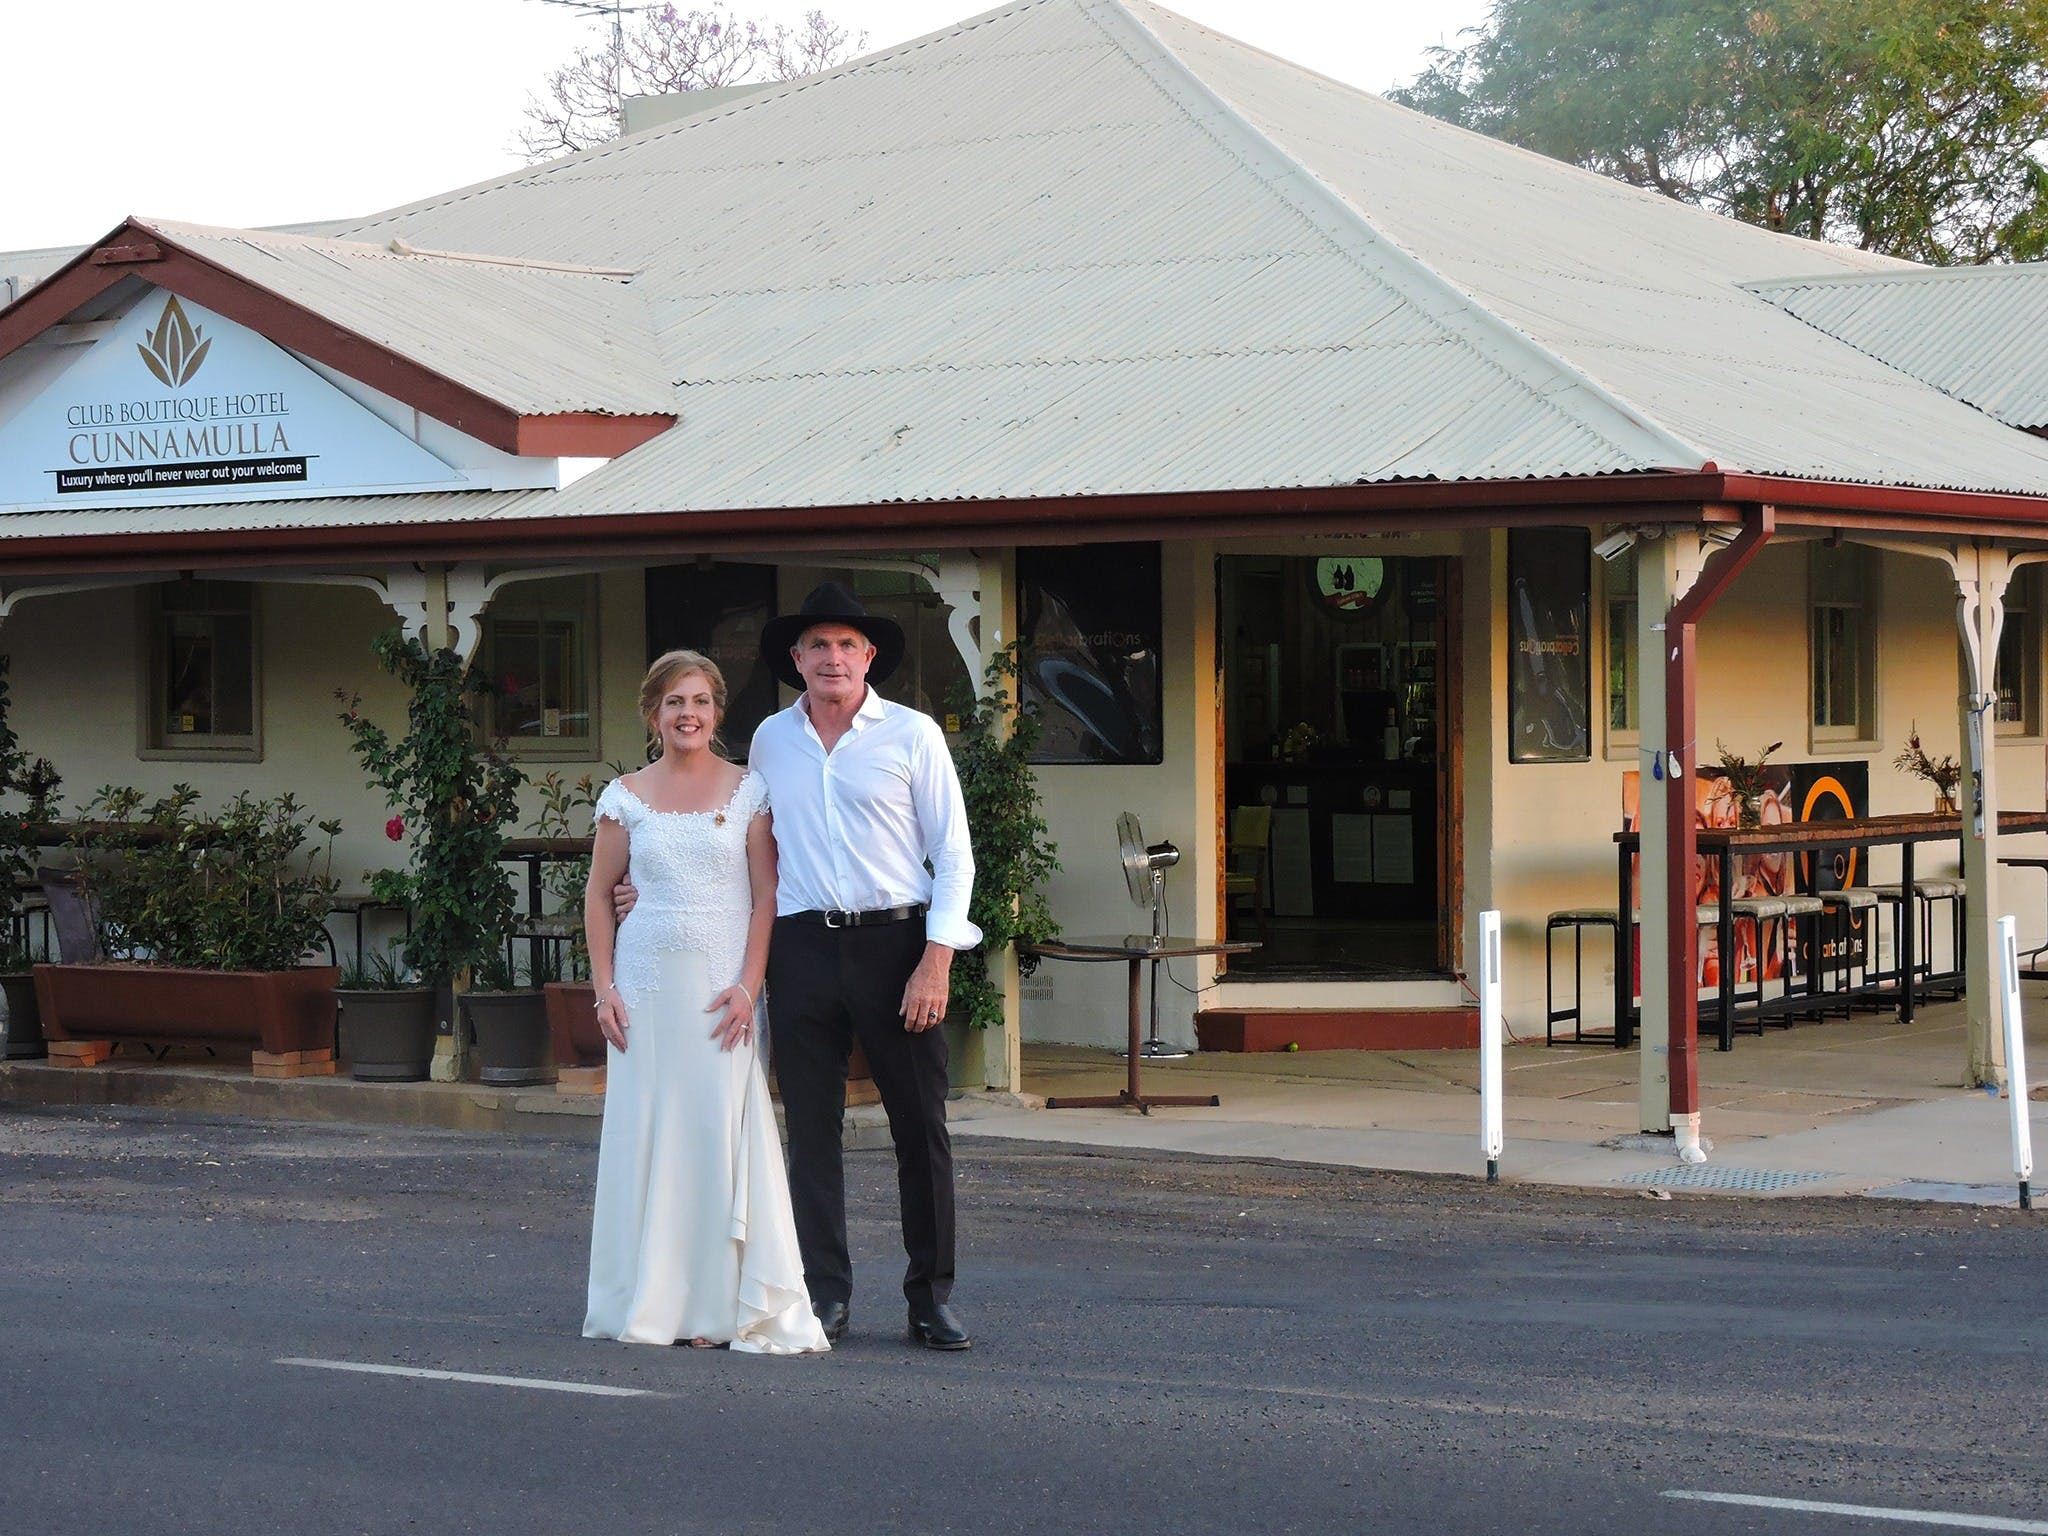 Club Boutique Hotel Cunnamulla - Accommodation Melbourne